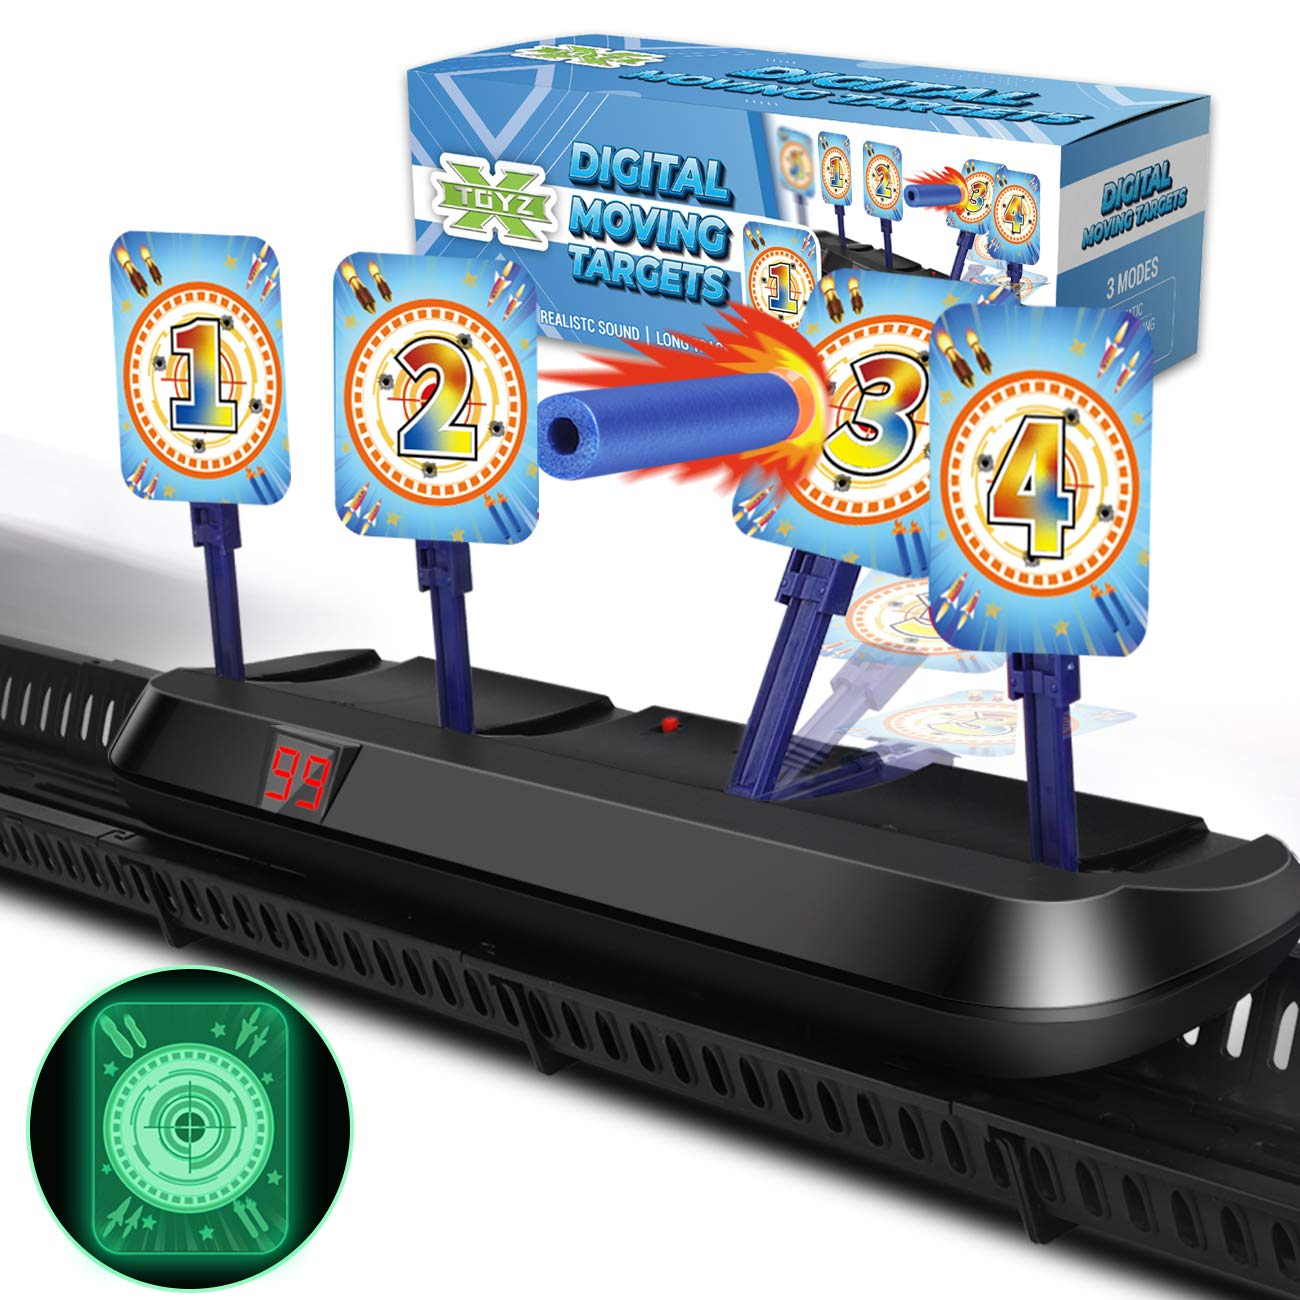 X TOYZ Digital Targets Shooting Game Toy for Kids - Electronic Running Target Auto Rest for Shooting Practice Compatible with Nerf Guns, Ideal Gift for Age 6+ Kids, Boys & Girls